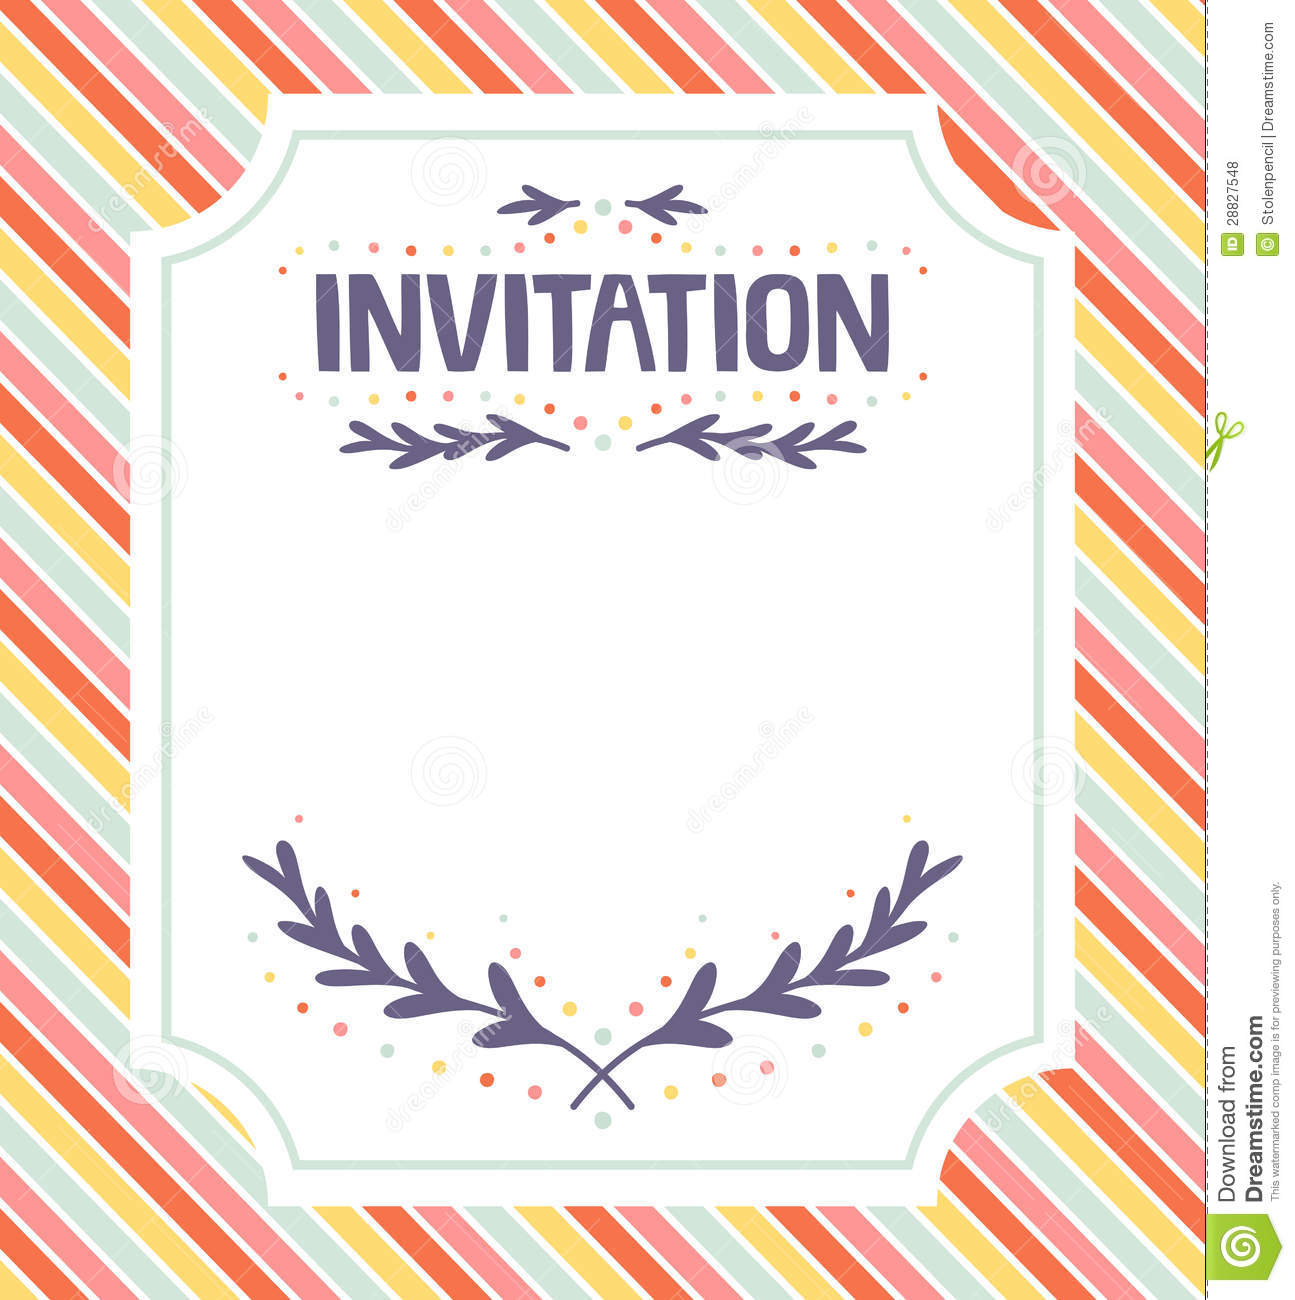 Invitation Template Stock Vector Illustration Of Occasion 28827548